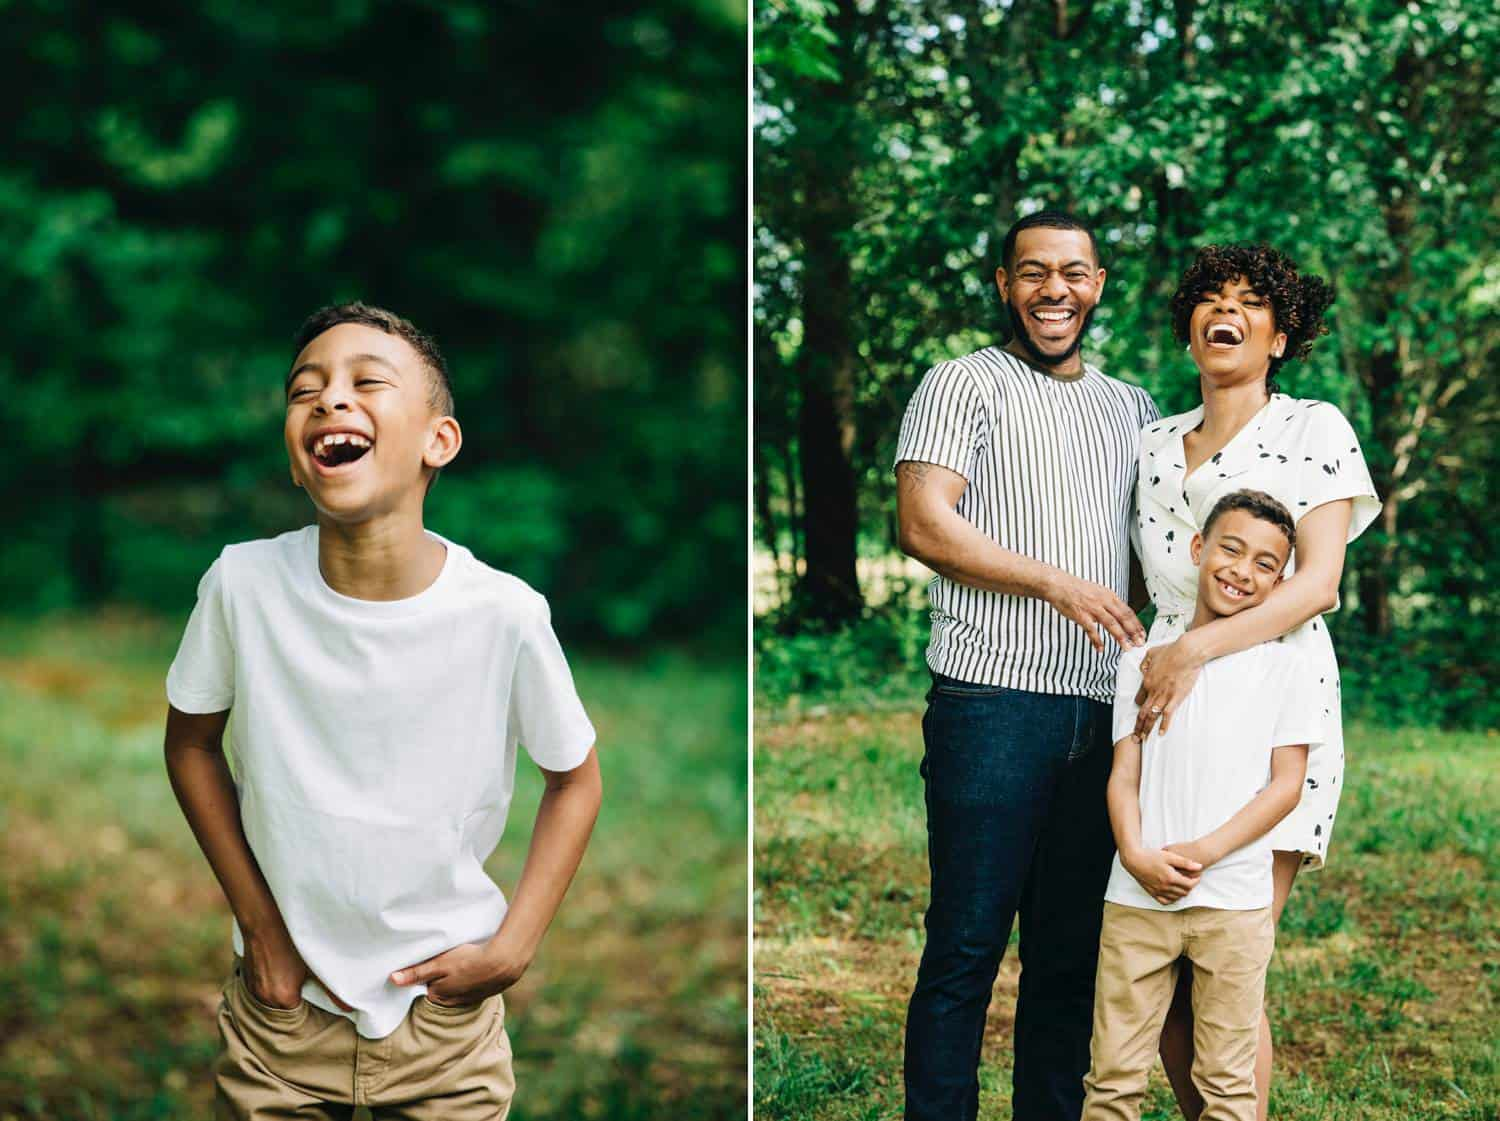 In the first of two family portraits, a little boy is wearing khakis and a white teeshirt. The forest behind him is blurry, with the focus entirely on his smiling face. In the second image, Dad, Mom, and Son all stand close together laughing for their outdoor portrait.